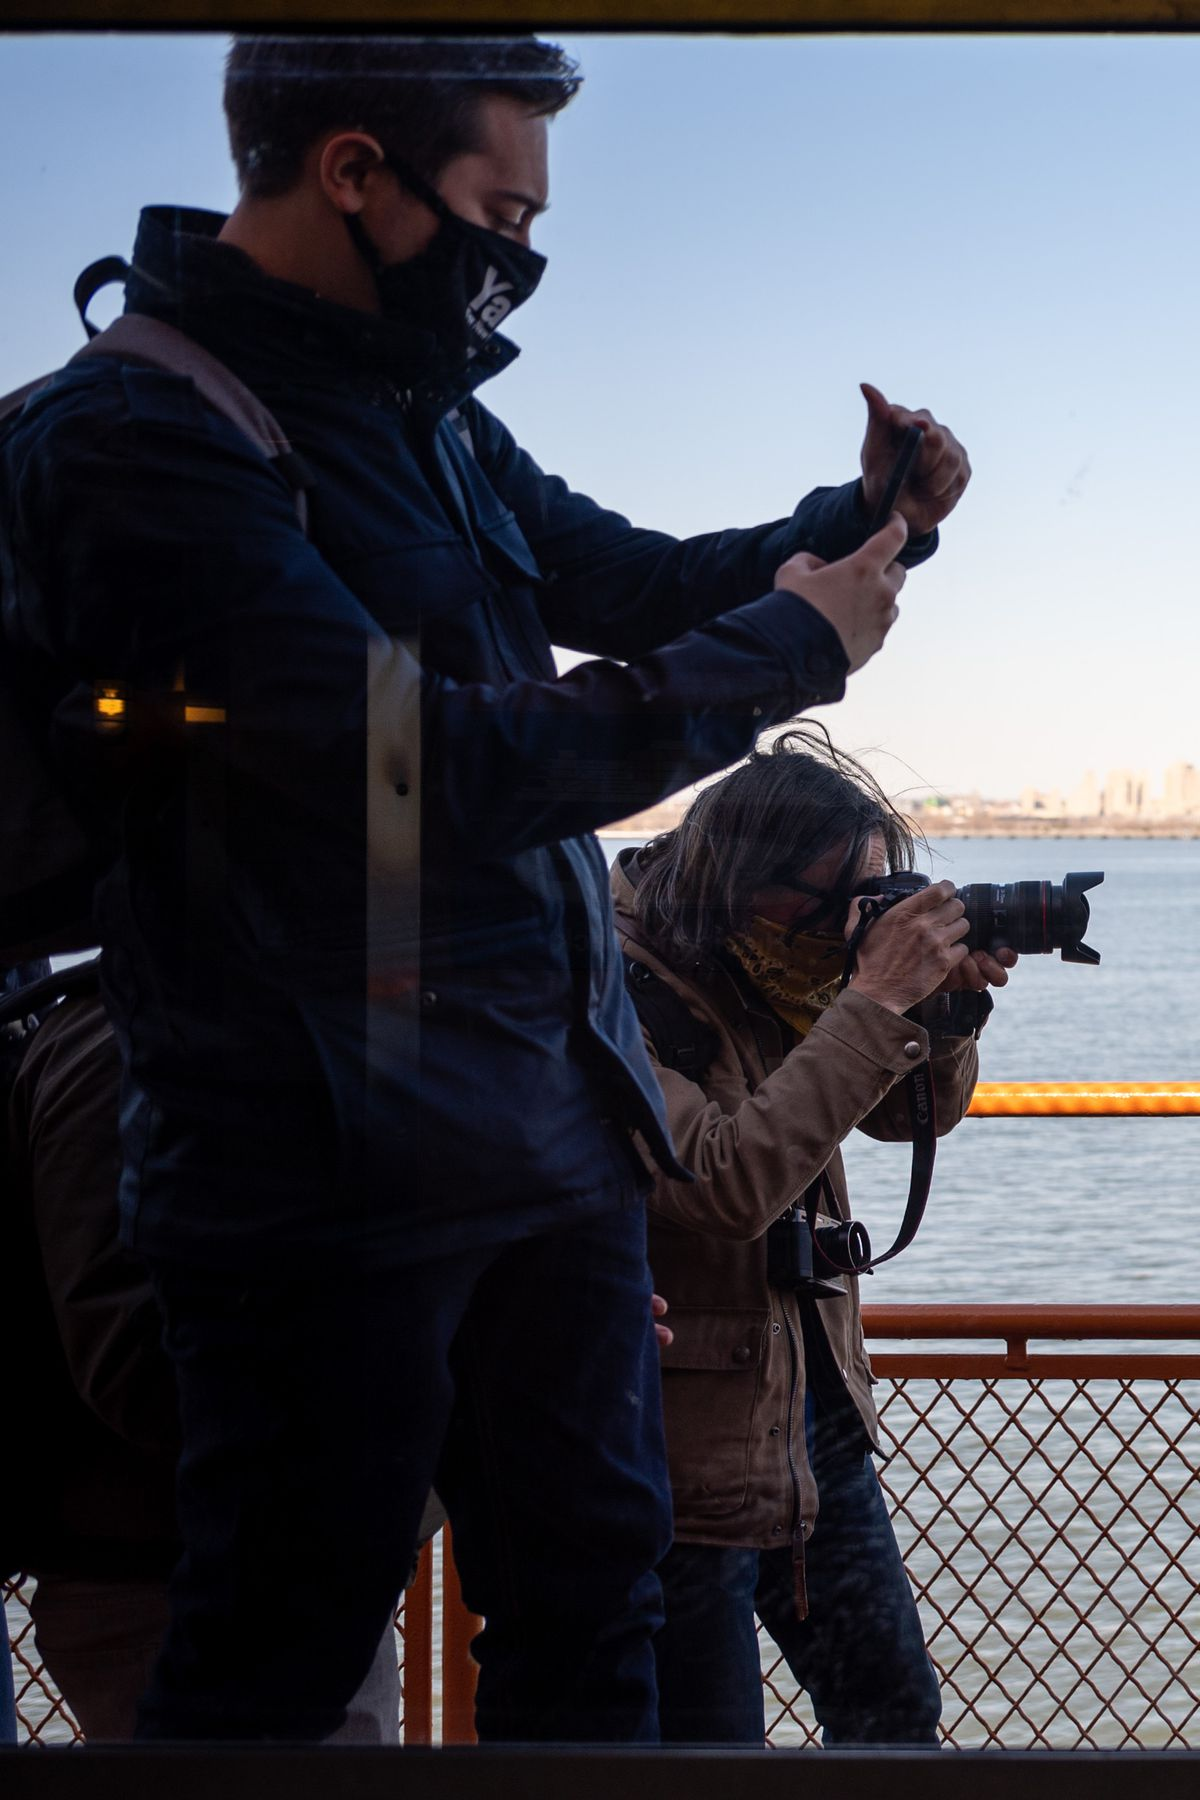 Photojournalist Spencer Platt, right, was photographing mayoral candidate Andrew Yang on the Staten Island Ferry before a passenger unprovoked attacked him with a pole.